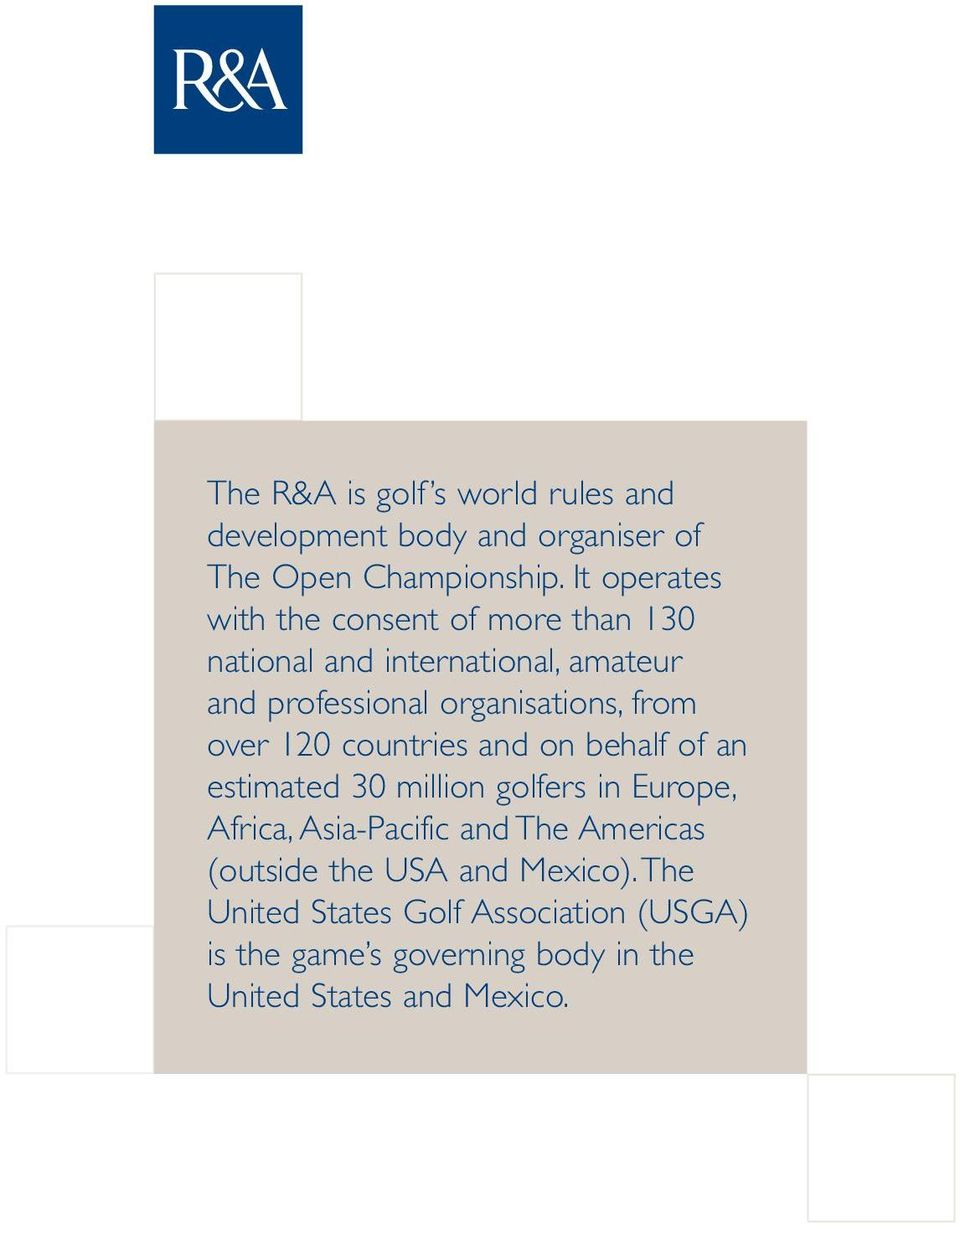 from over 120 countries and on behalf of an estimated 30 million golfers in Europe, Africa, Asia-Pacific and The